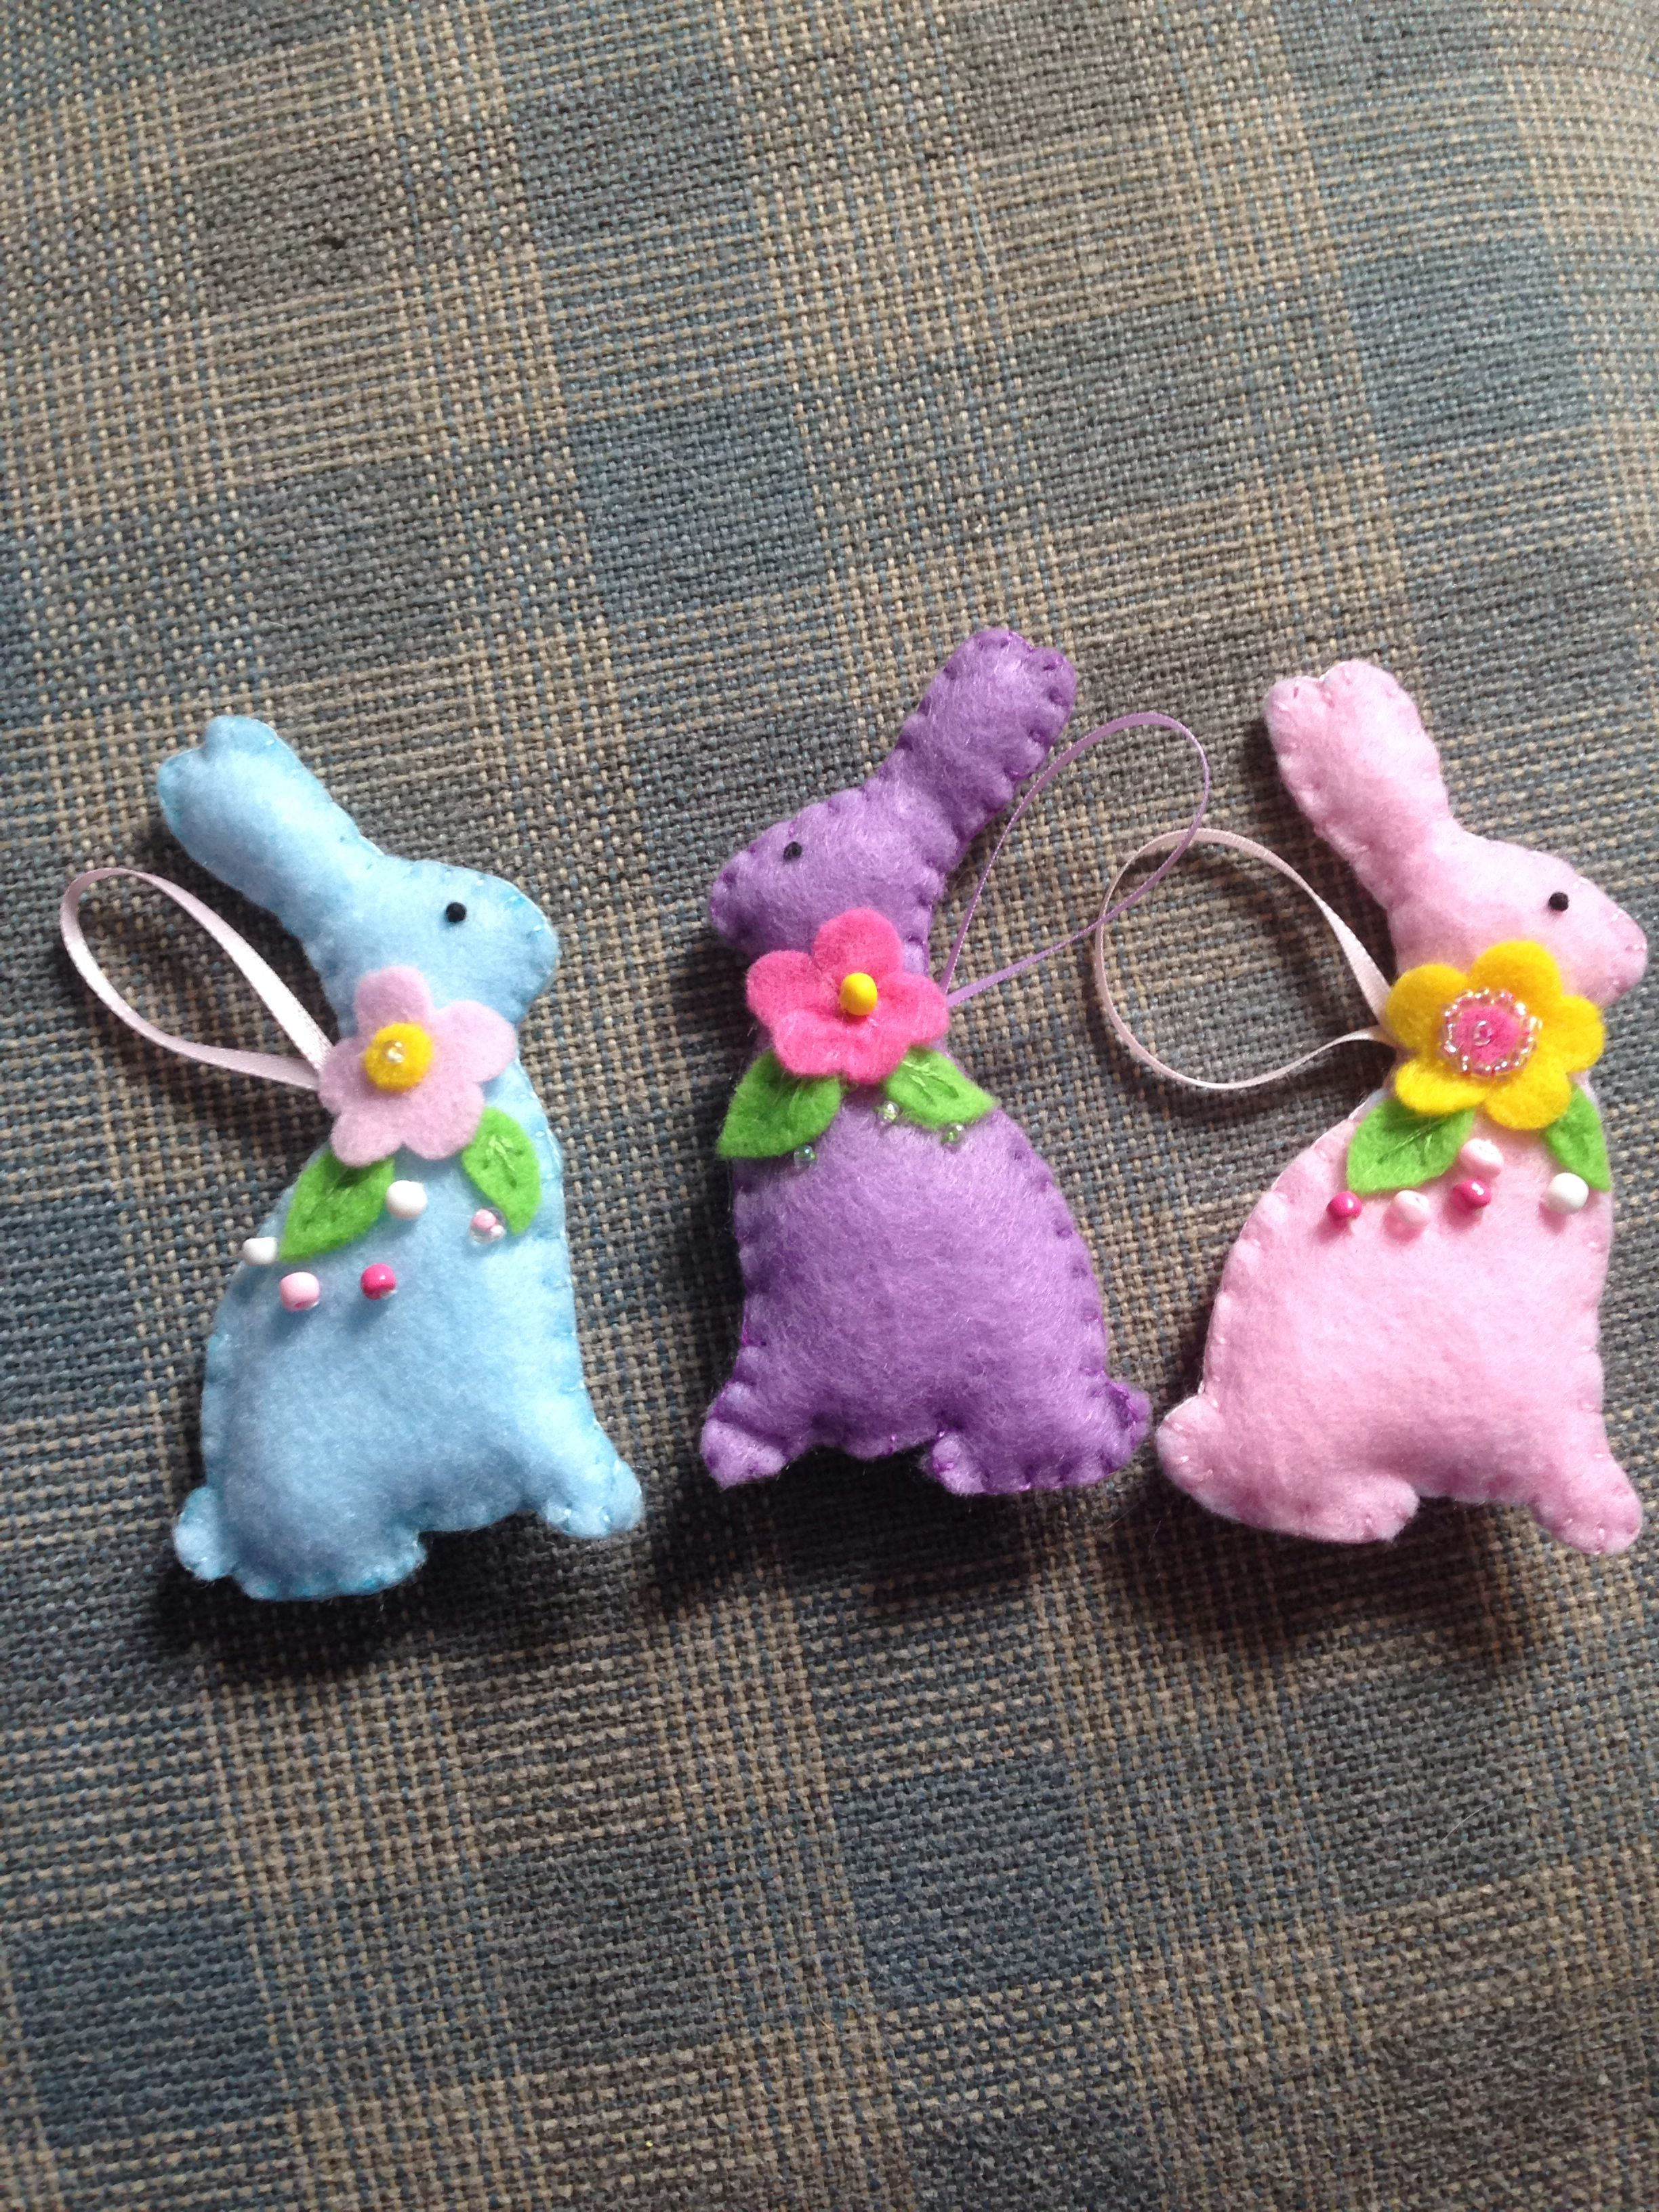 small felted pink-blue wool bunny. Cute colorful ornament easter bunnies